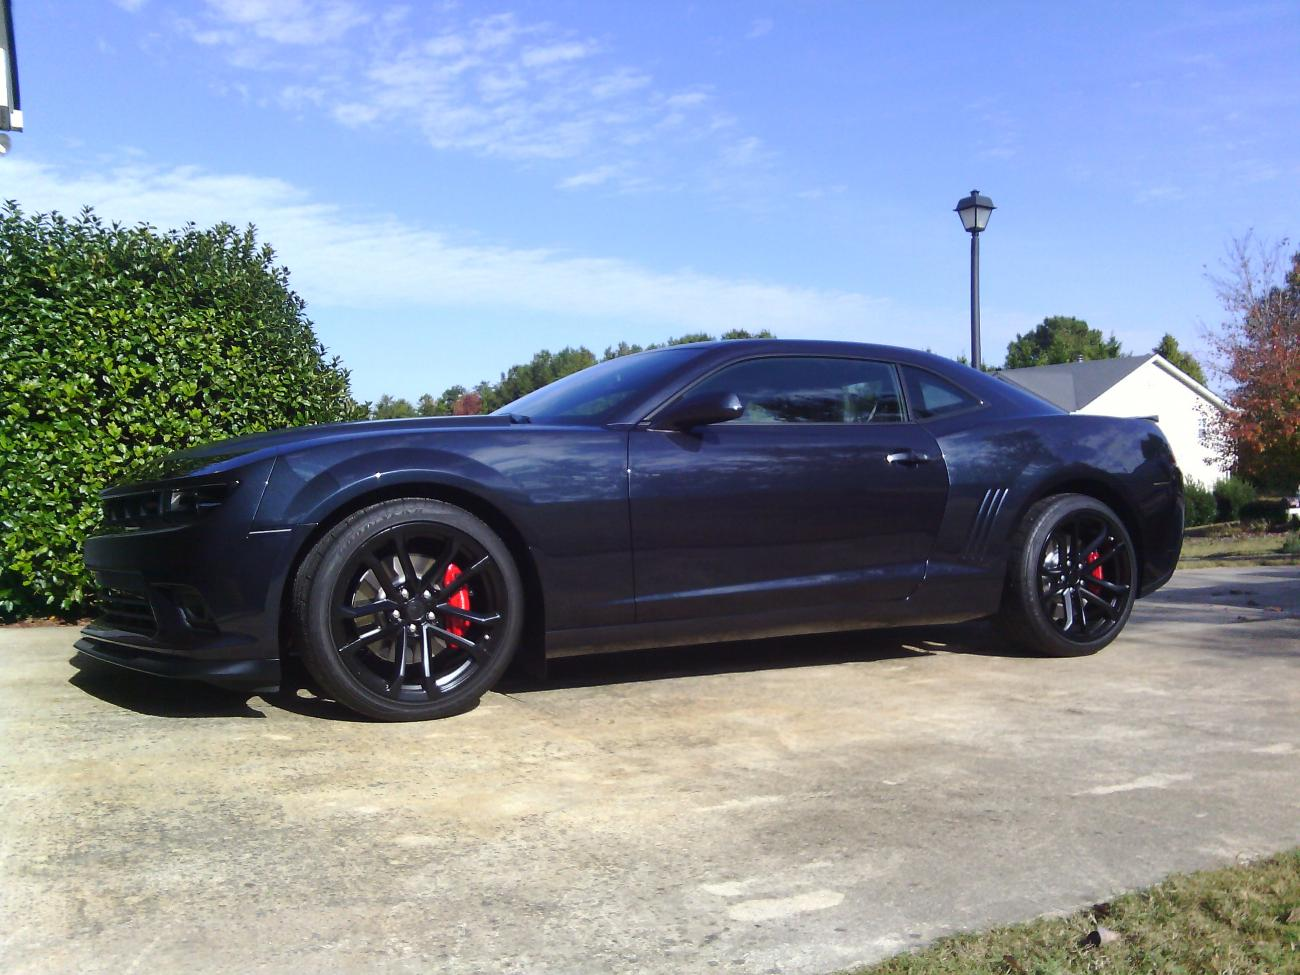 Official Blue Ray Metallic Gxh Camaro Thread Page 11